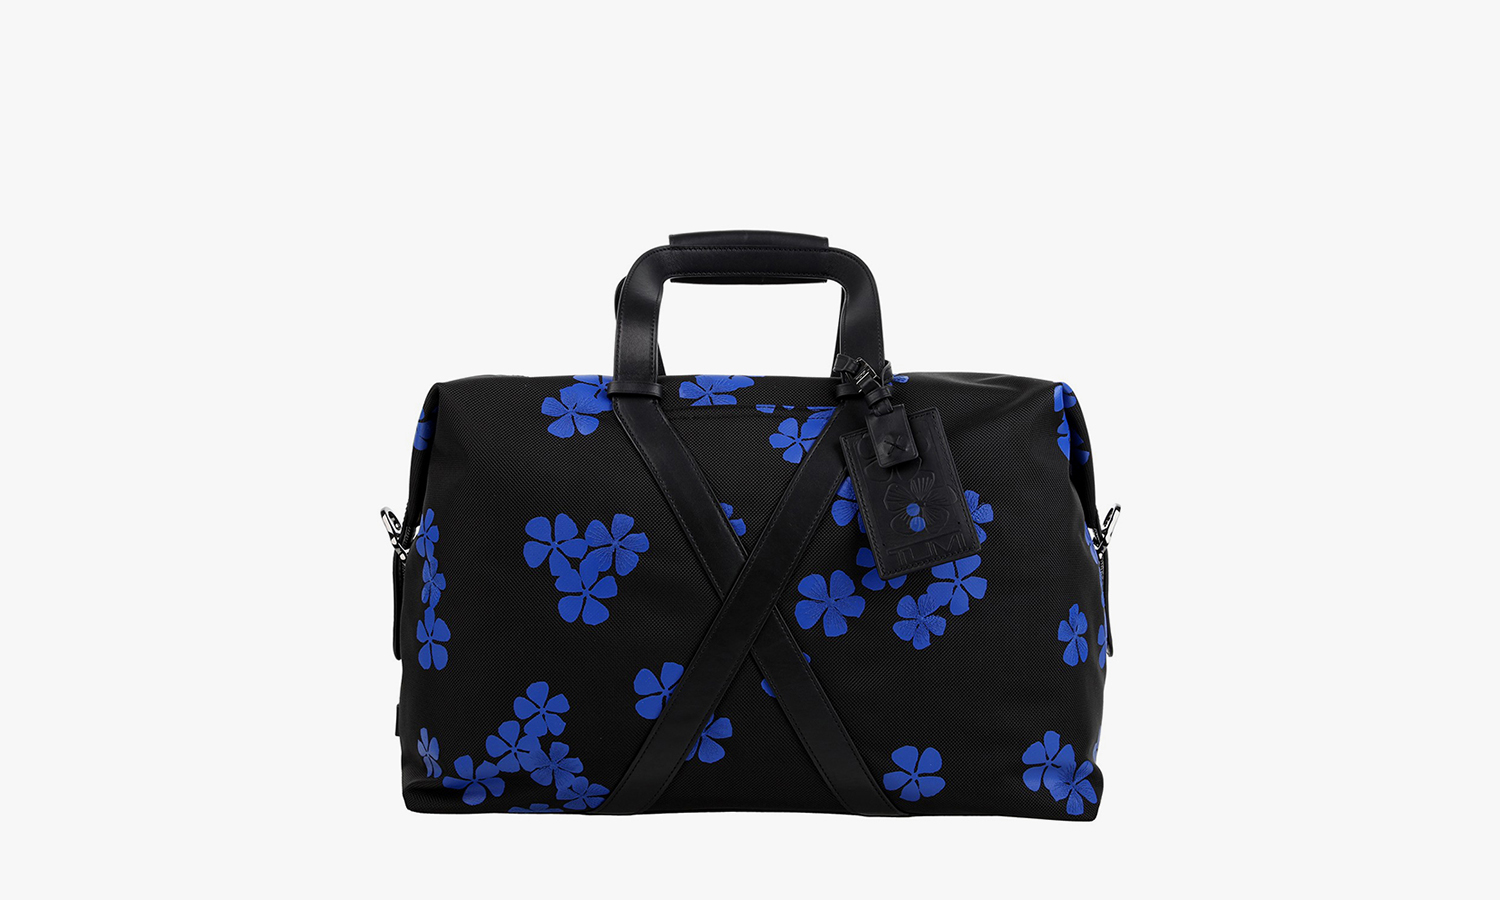 Colette-Tumi-Aloha-Luggage-FT-0